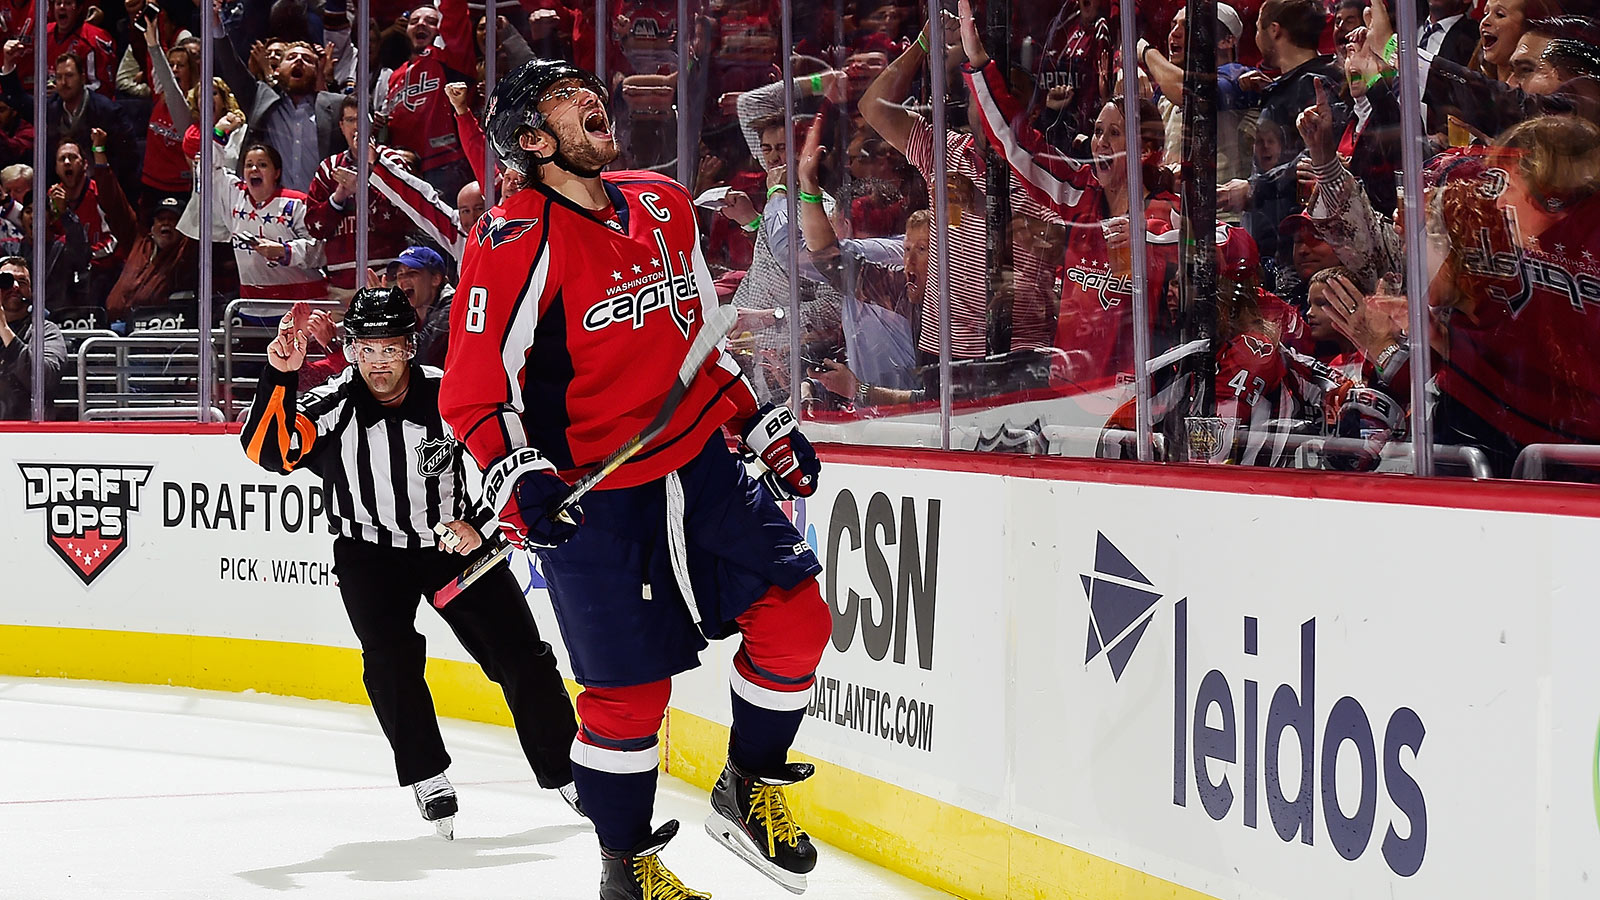 Ovechkin's team mates and coach in awe of his latest accomplishment